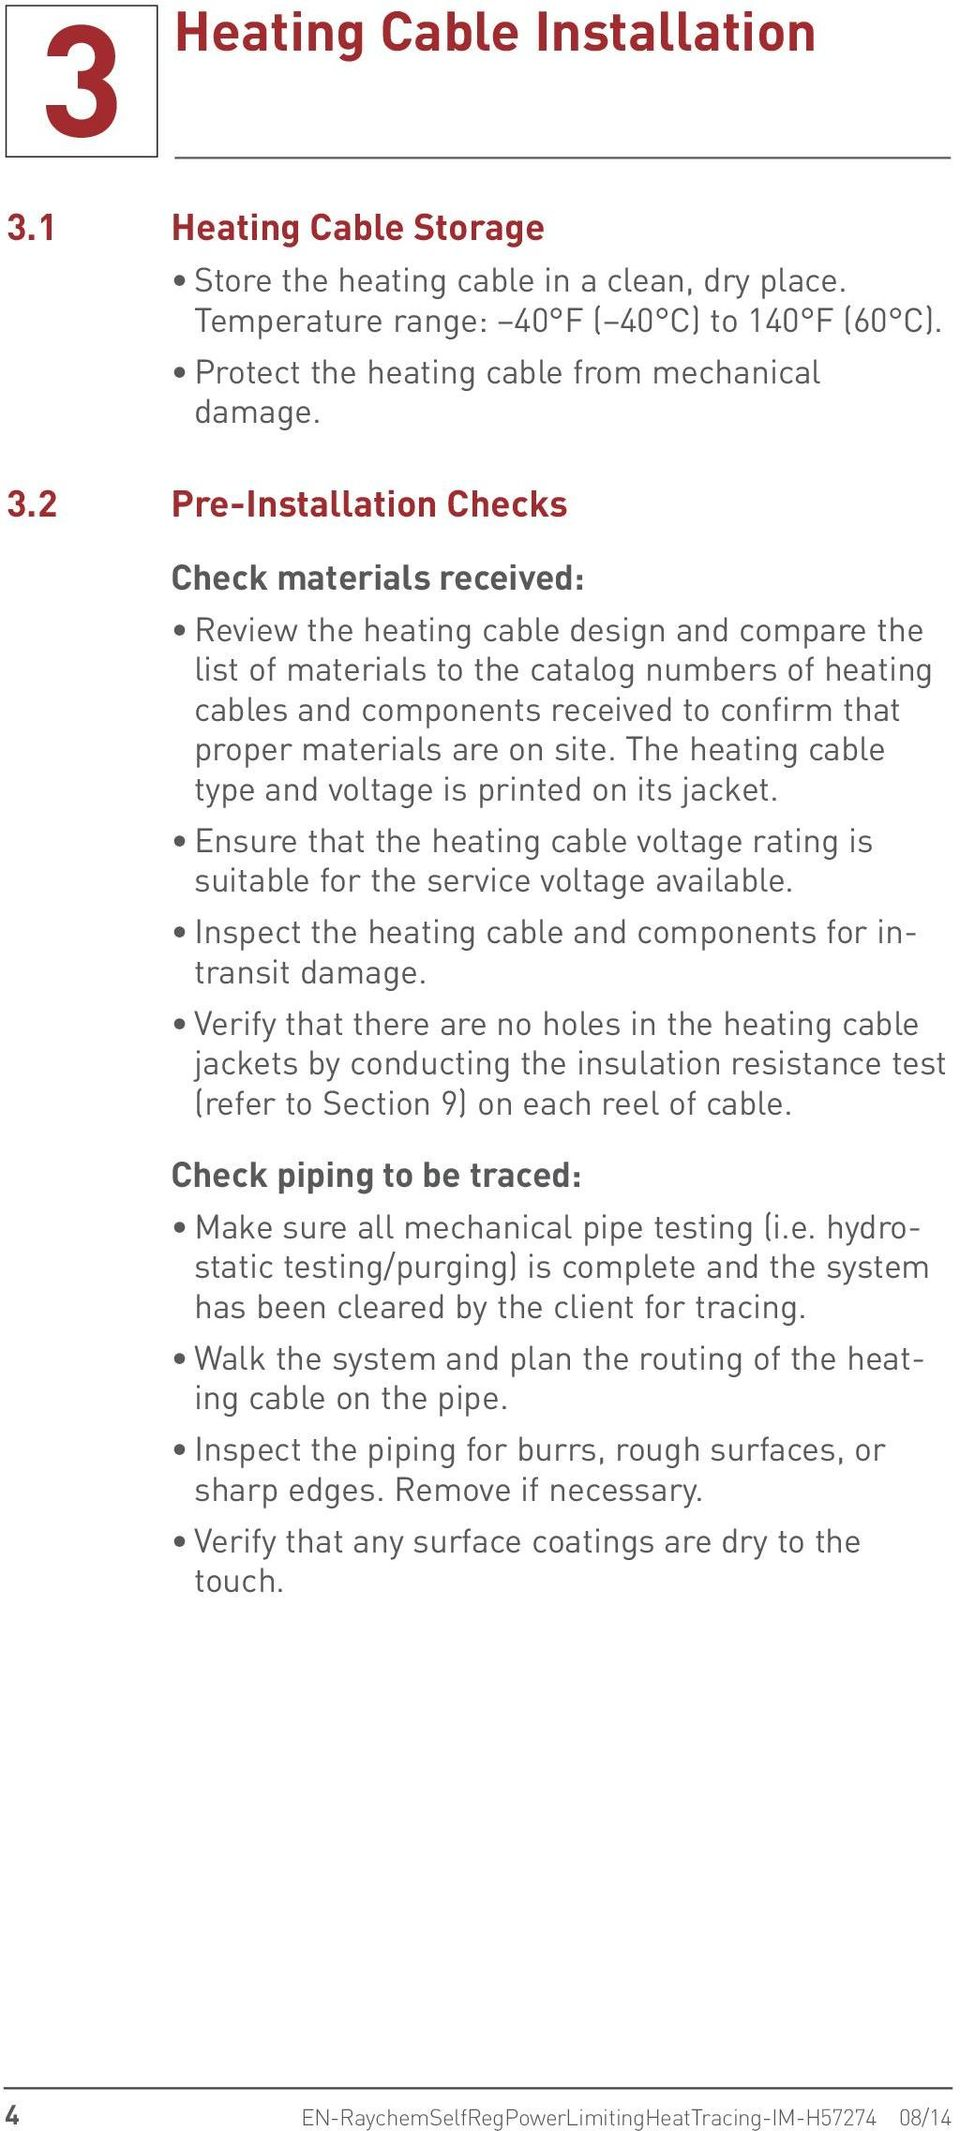 that proper materials are on site. The heating cable type and voltage is printed on its jacket. Ensure that the heating cable voltage rating is suitable for the service voltage available.